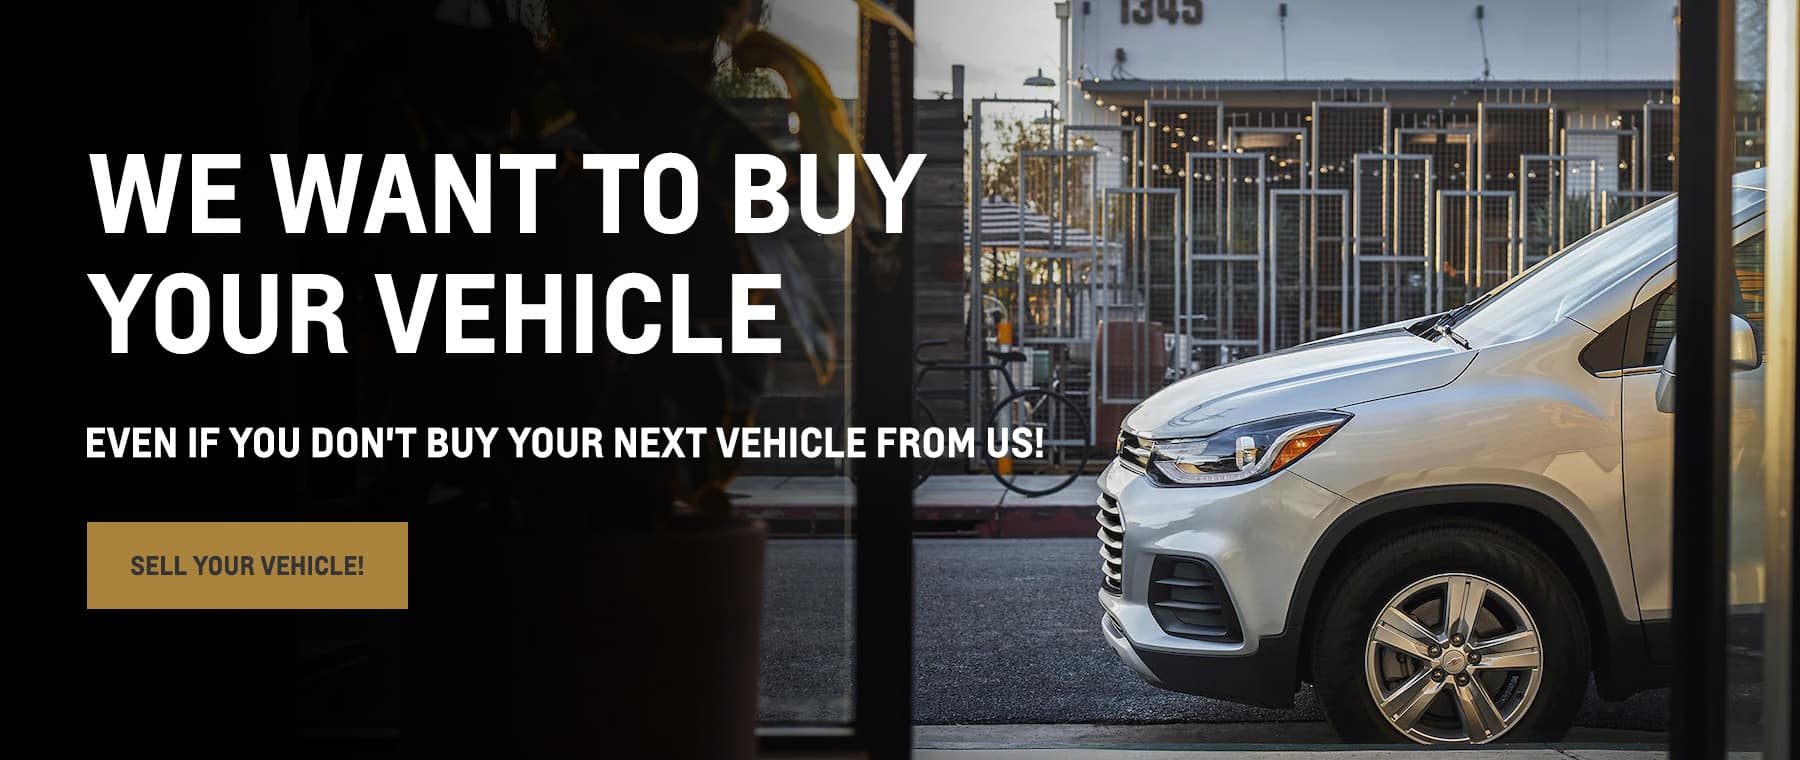 We want to buy your vehicle